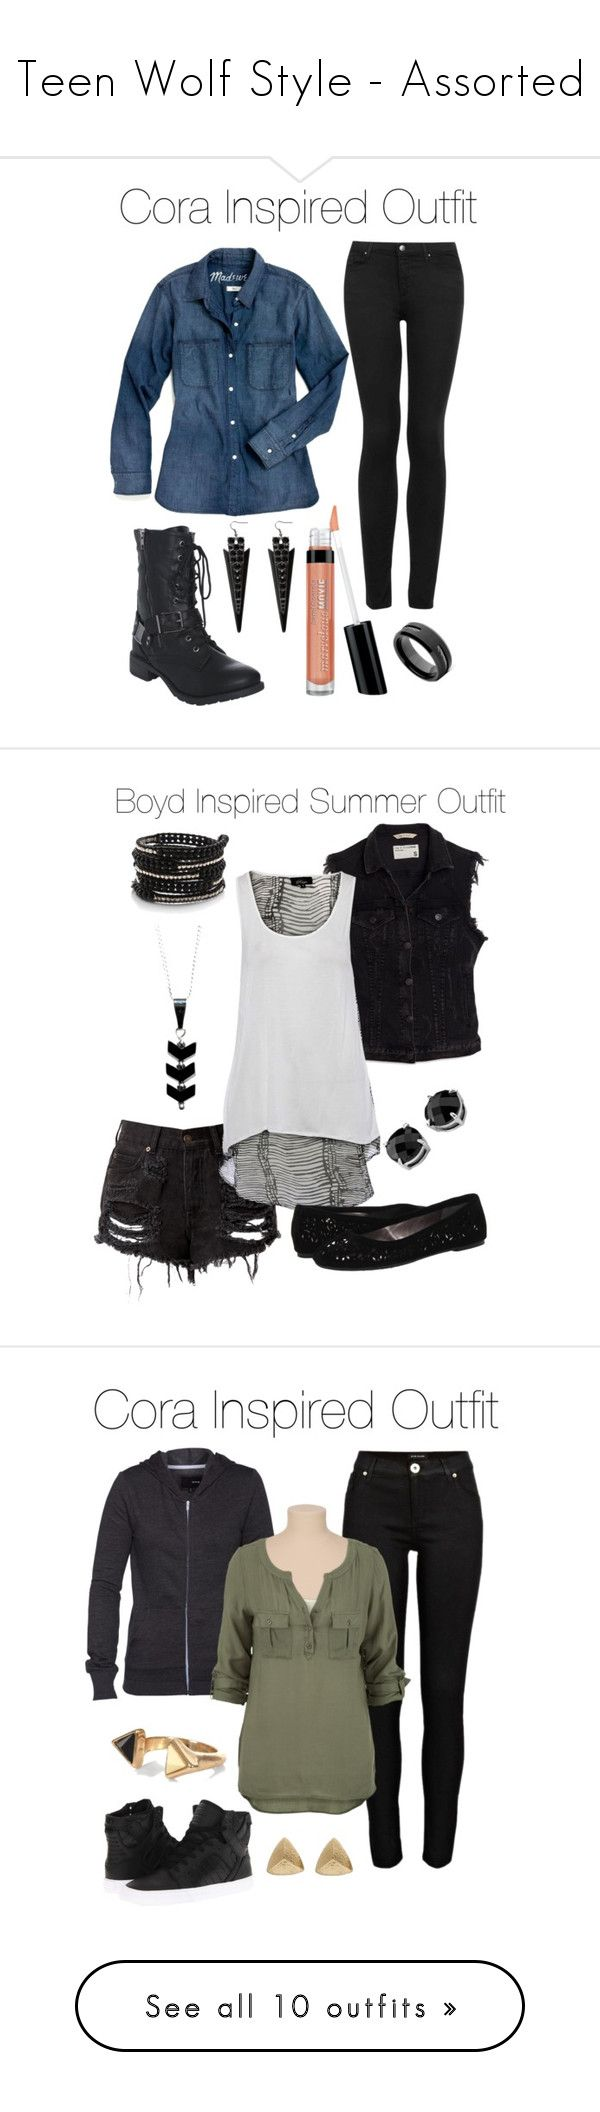 """""""Teen Wolf Style - Assorted"""" by stardustonthepiano ❤ liked on Polyvore featuring Madewell, Topshop, Bare Escentuals, Wet Seal, Pieces, rag & bone/JEAN, Pink & Pepper, Giani, Chan Luu and River Island"""